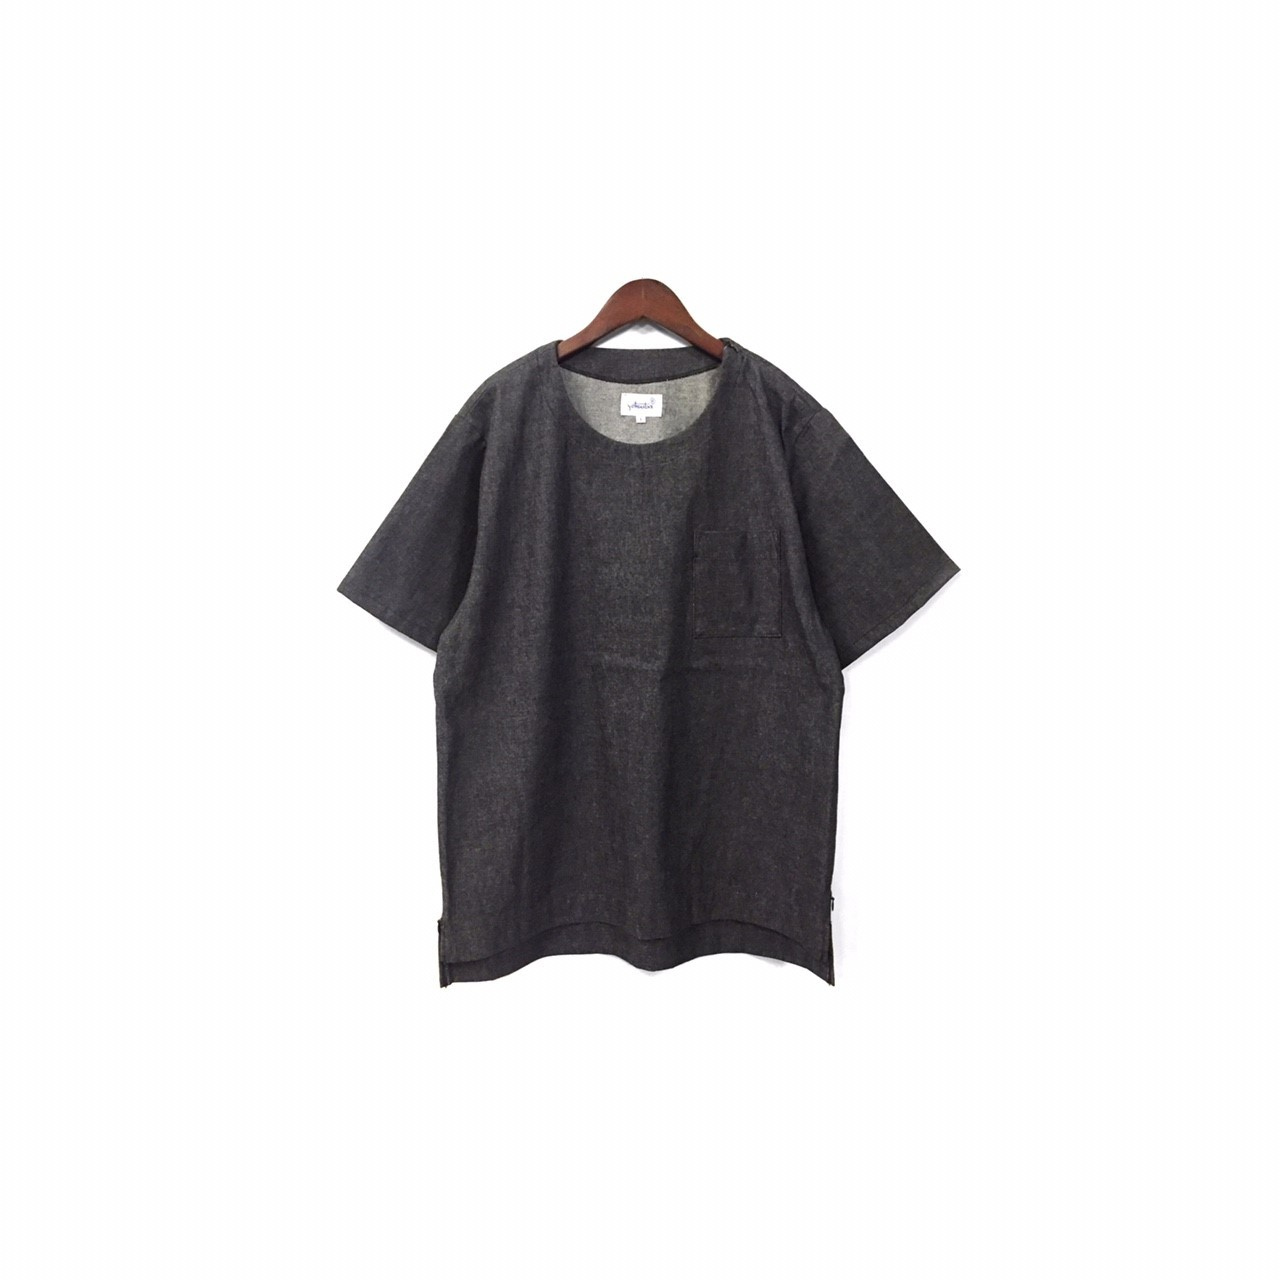 yotsuba - Shortsleeve Denim Tops / Black ¥13000+ta